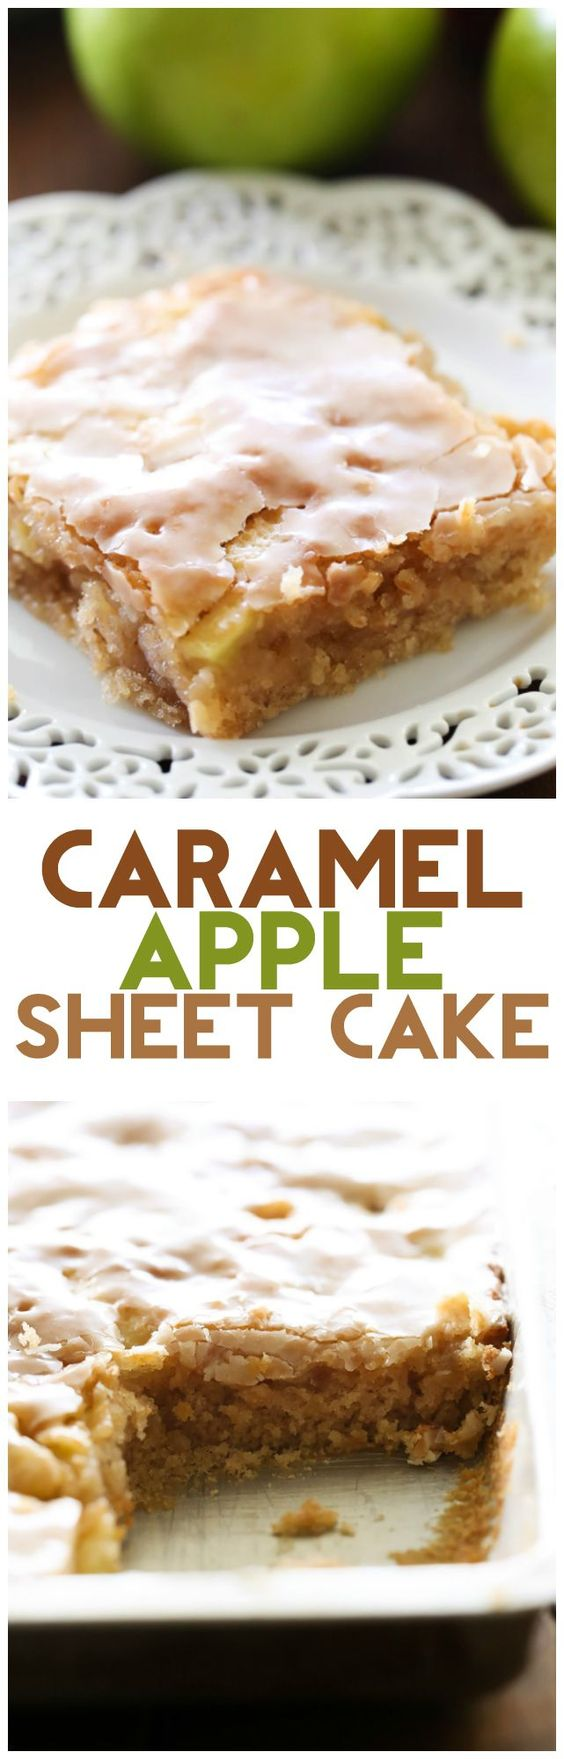 Caramel Apple Sheet Cake Recipe via Chef in Training ... this cake is perfectly moist and has caramel frosting infused in each and every bite! It is heavenly! The Best EASY Sheet Cakes Recipes - Simple and Quick Party Crowds Desserts for Holidays, Special Occasions and Family Celebrations #sheetcakerecipes #sheetcake #sheetcakes #cakerecipes #cakes #dessertforacrowd #partydesserts #christmasdesserts #thanksgivingdesserts #newyearseve #birthdaydesserts